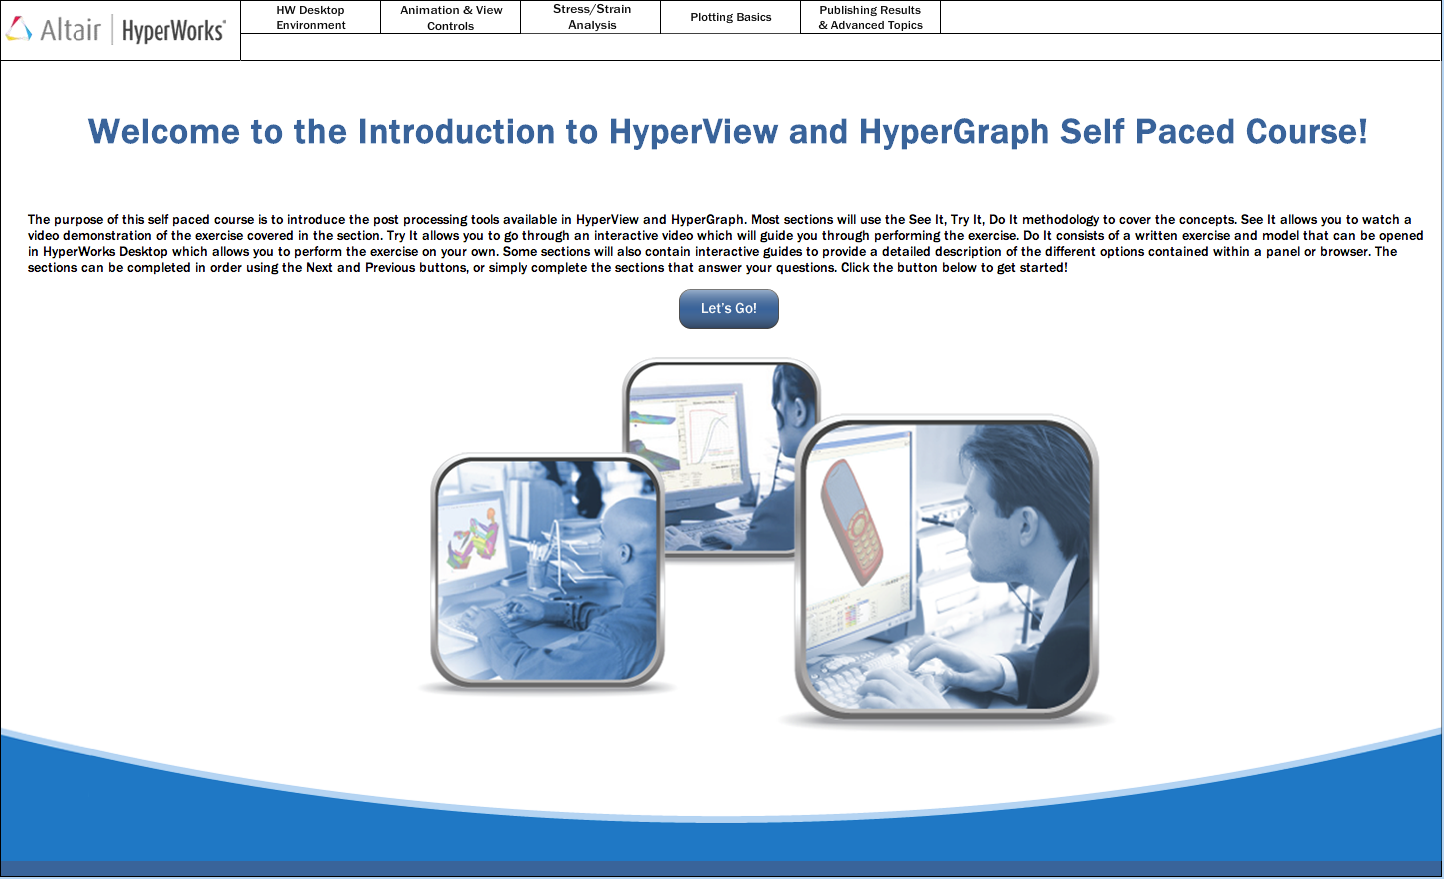 HyperView and HyperGraph Introduction